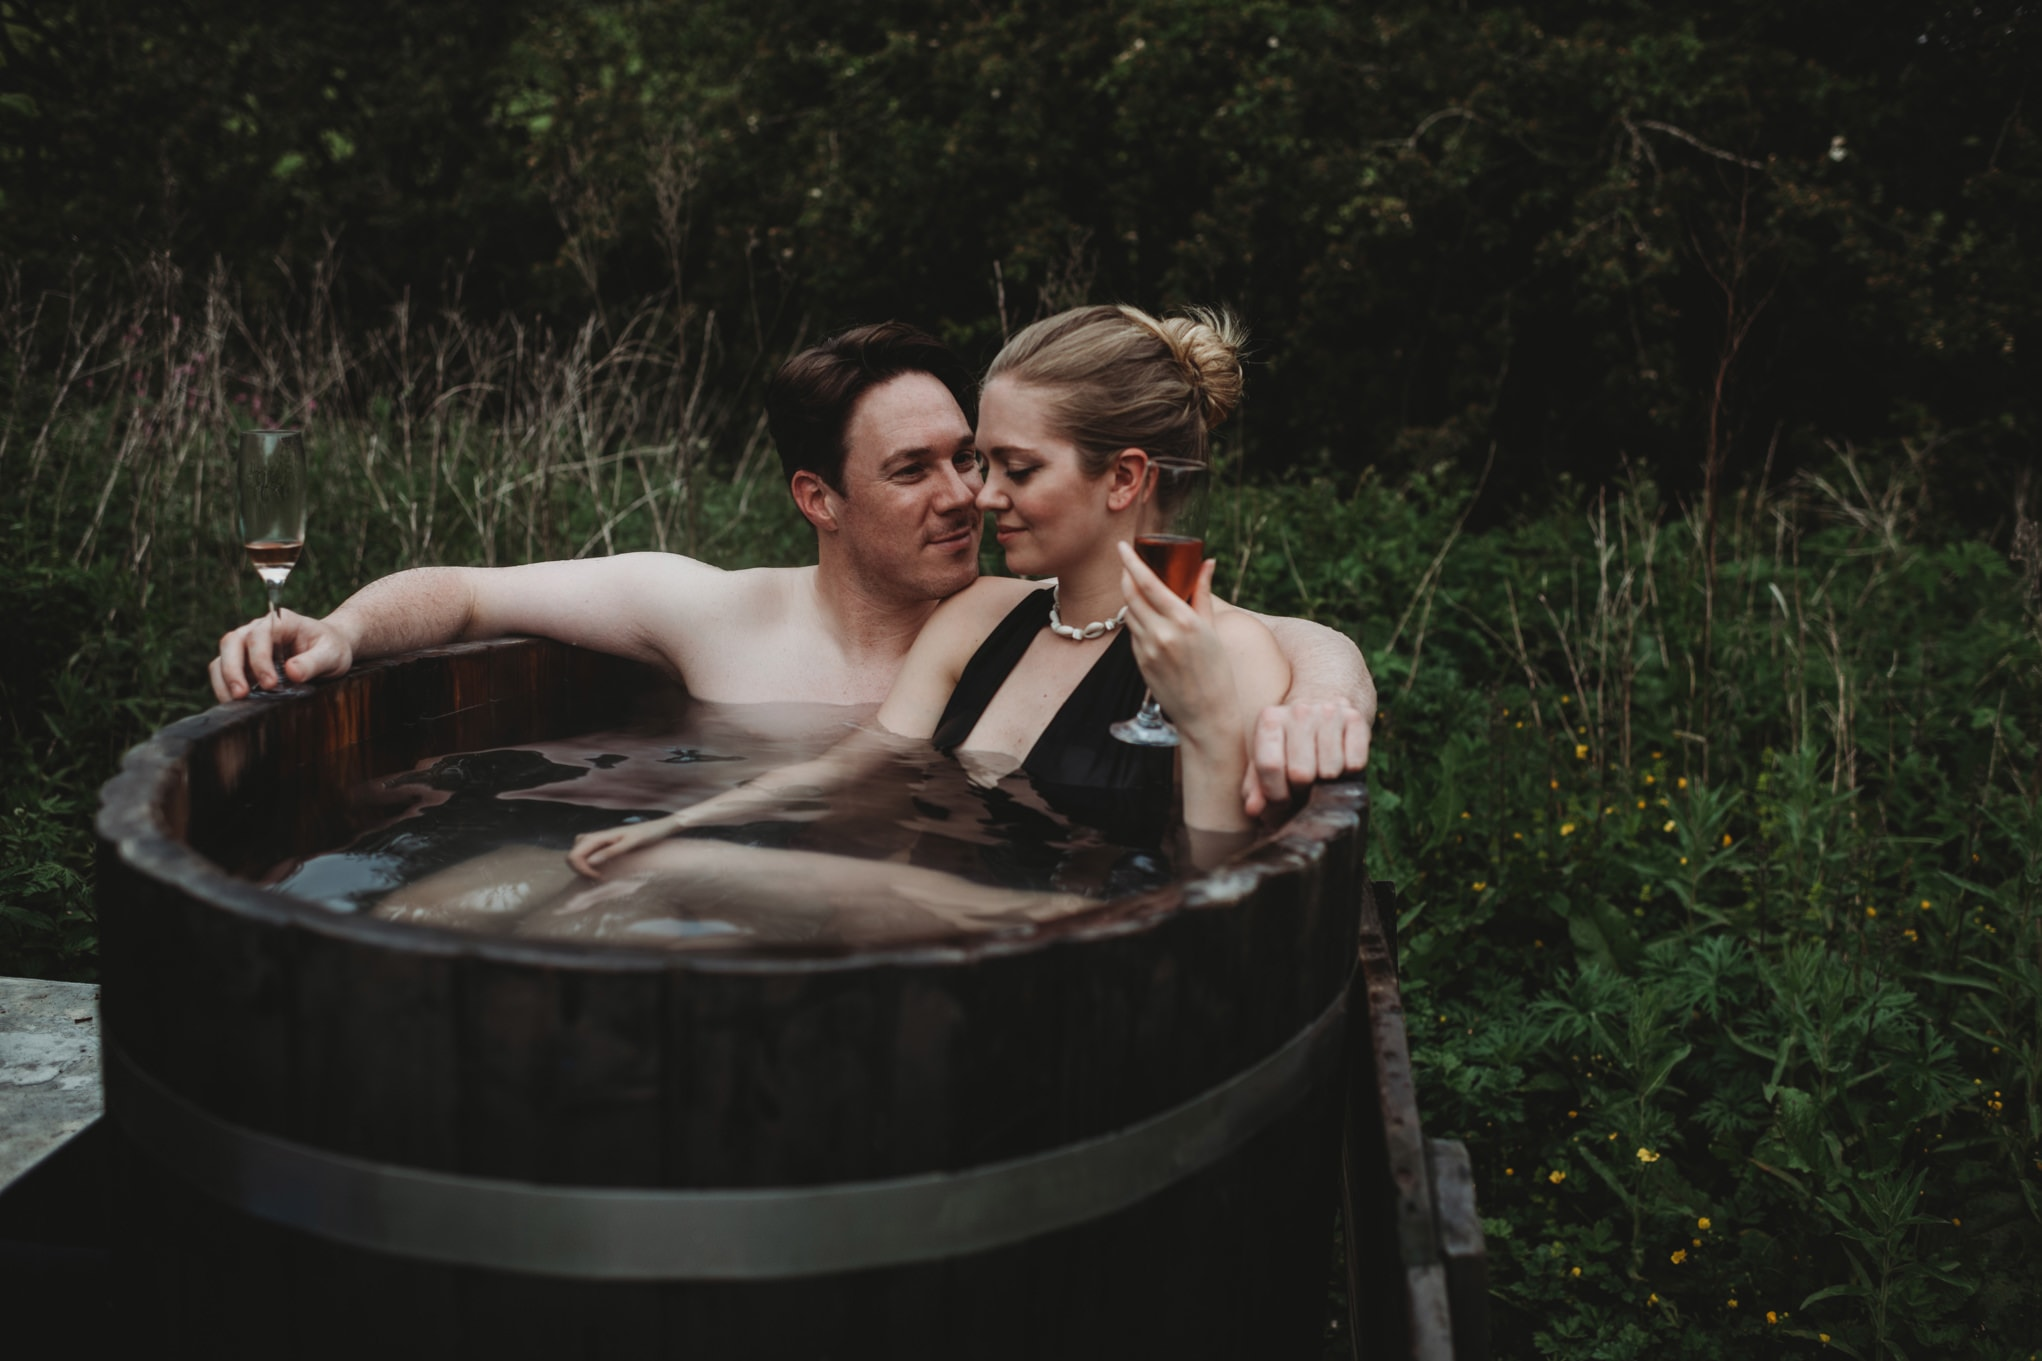 hot tub celebration at roulotte retreat, Scotland